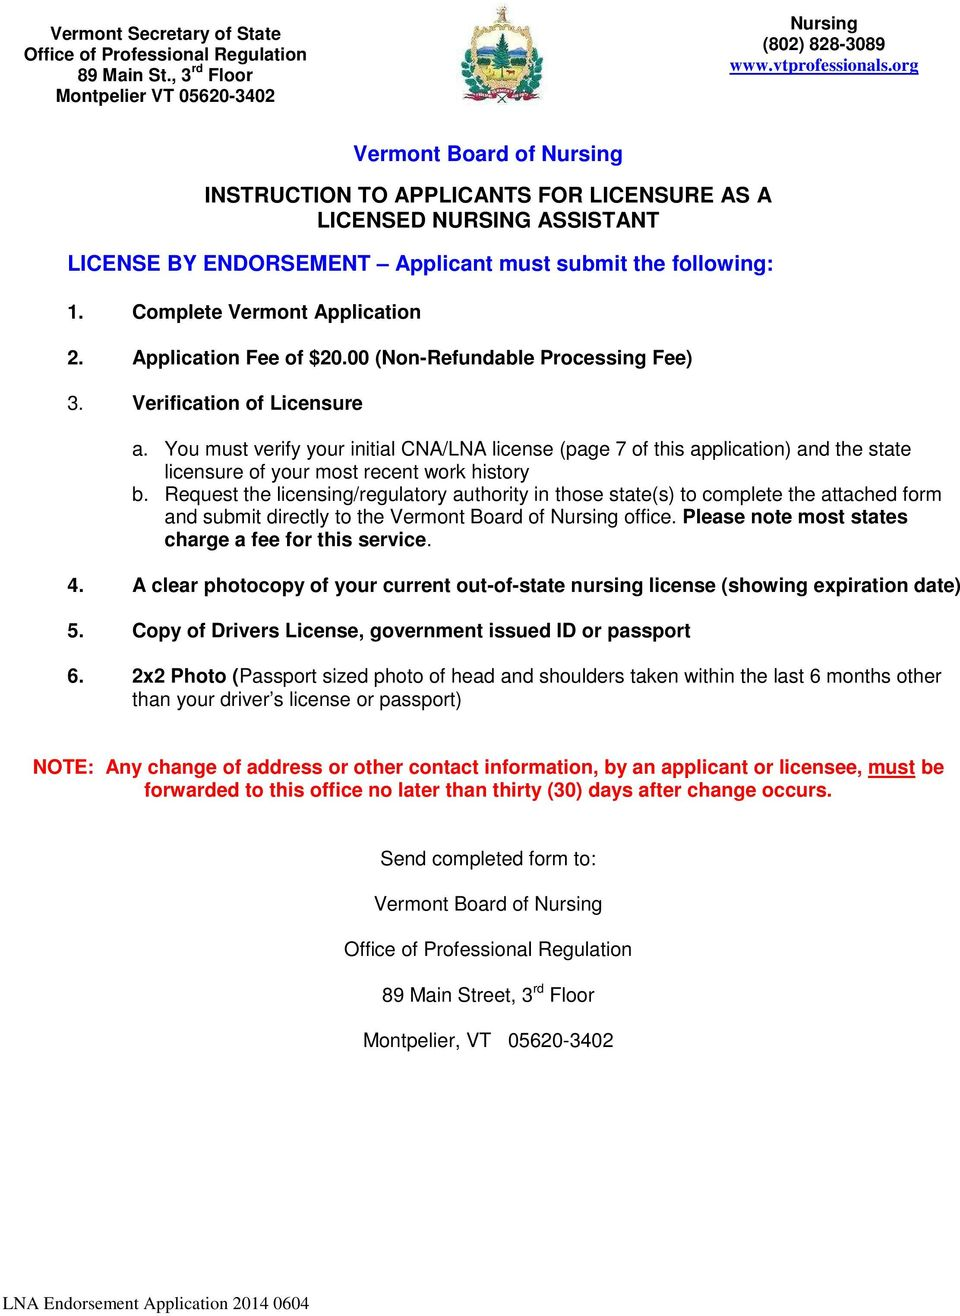 Vermont Board Of Nursing Instruction To Applicants For Licensure As